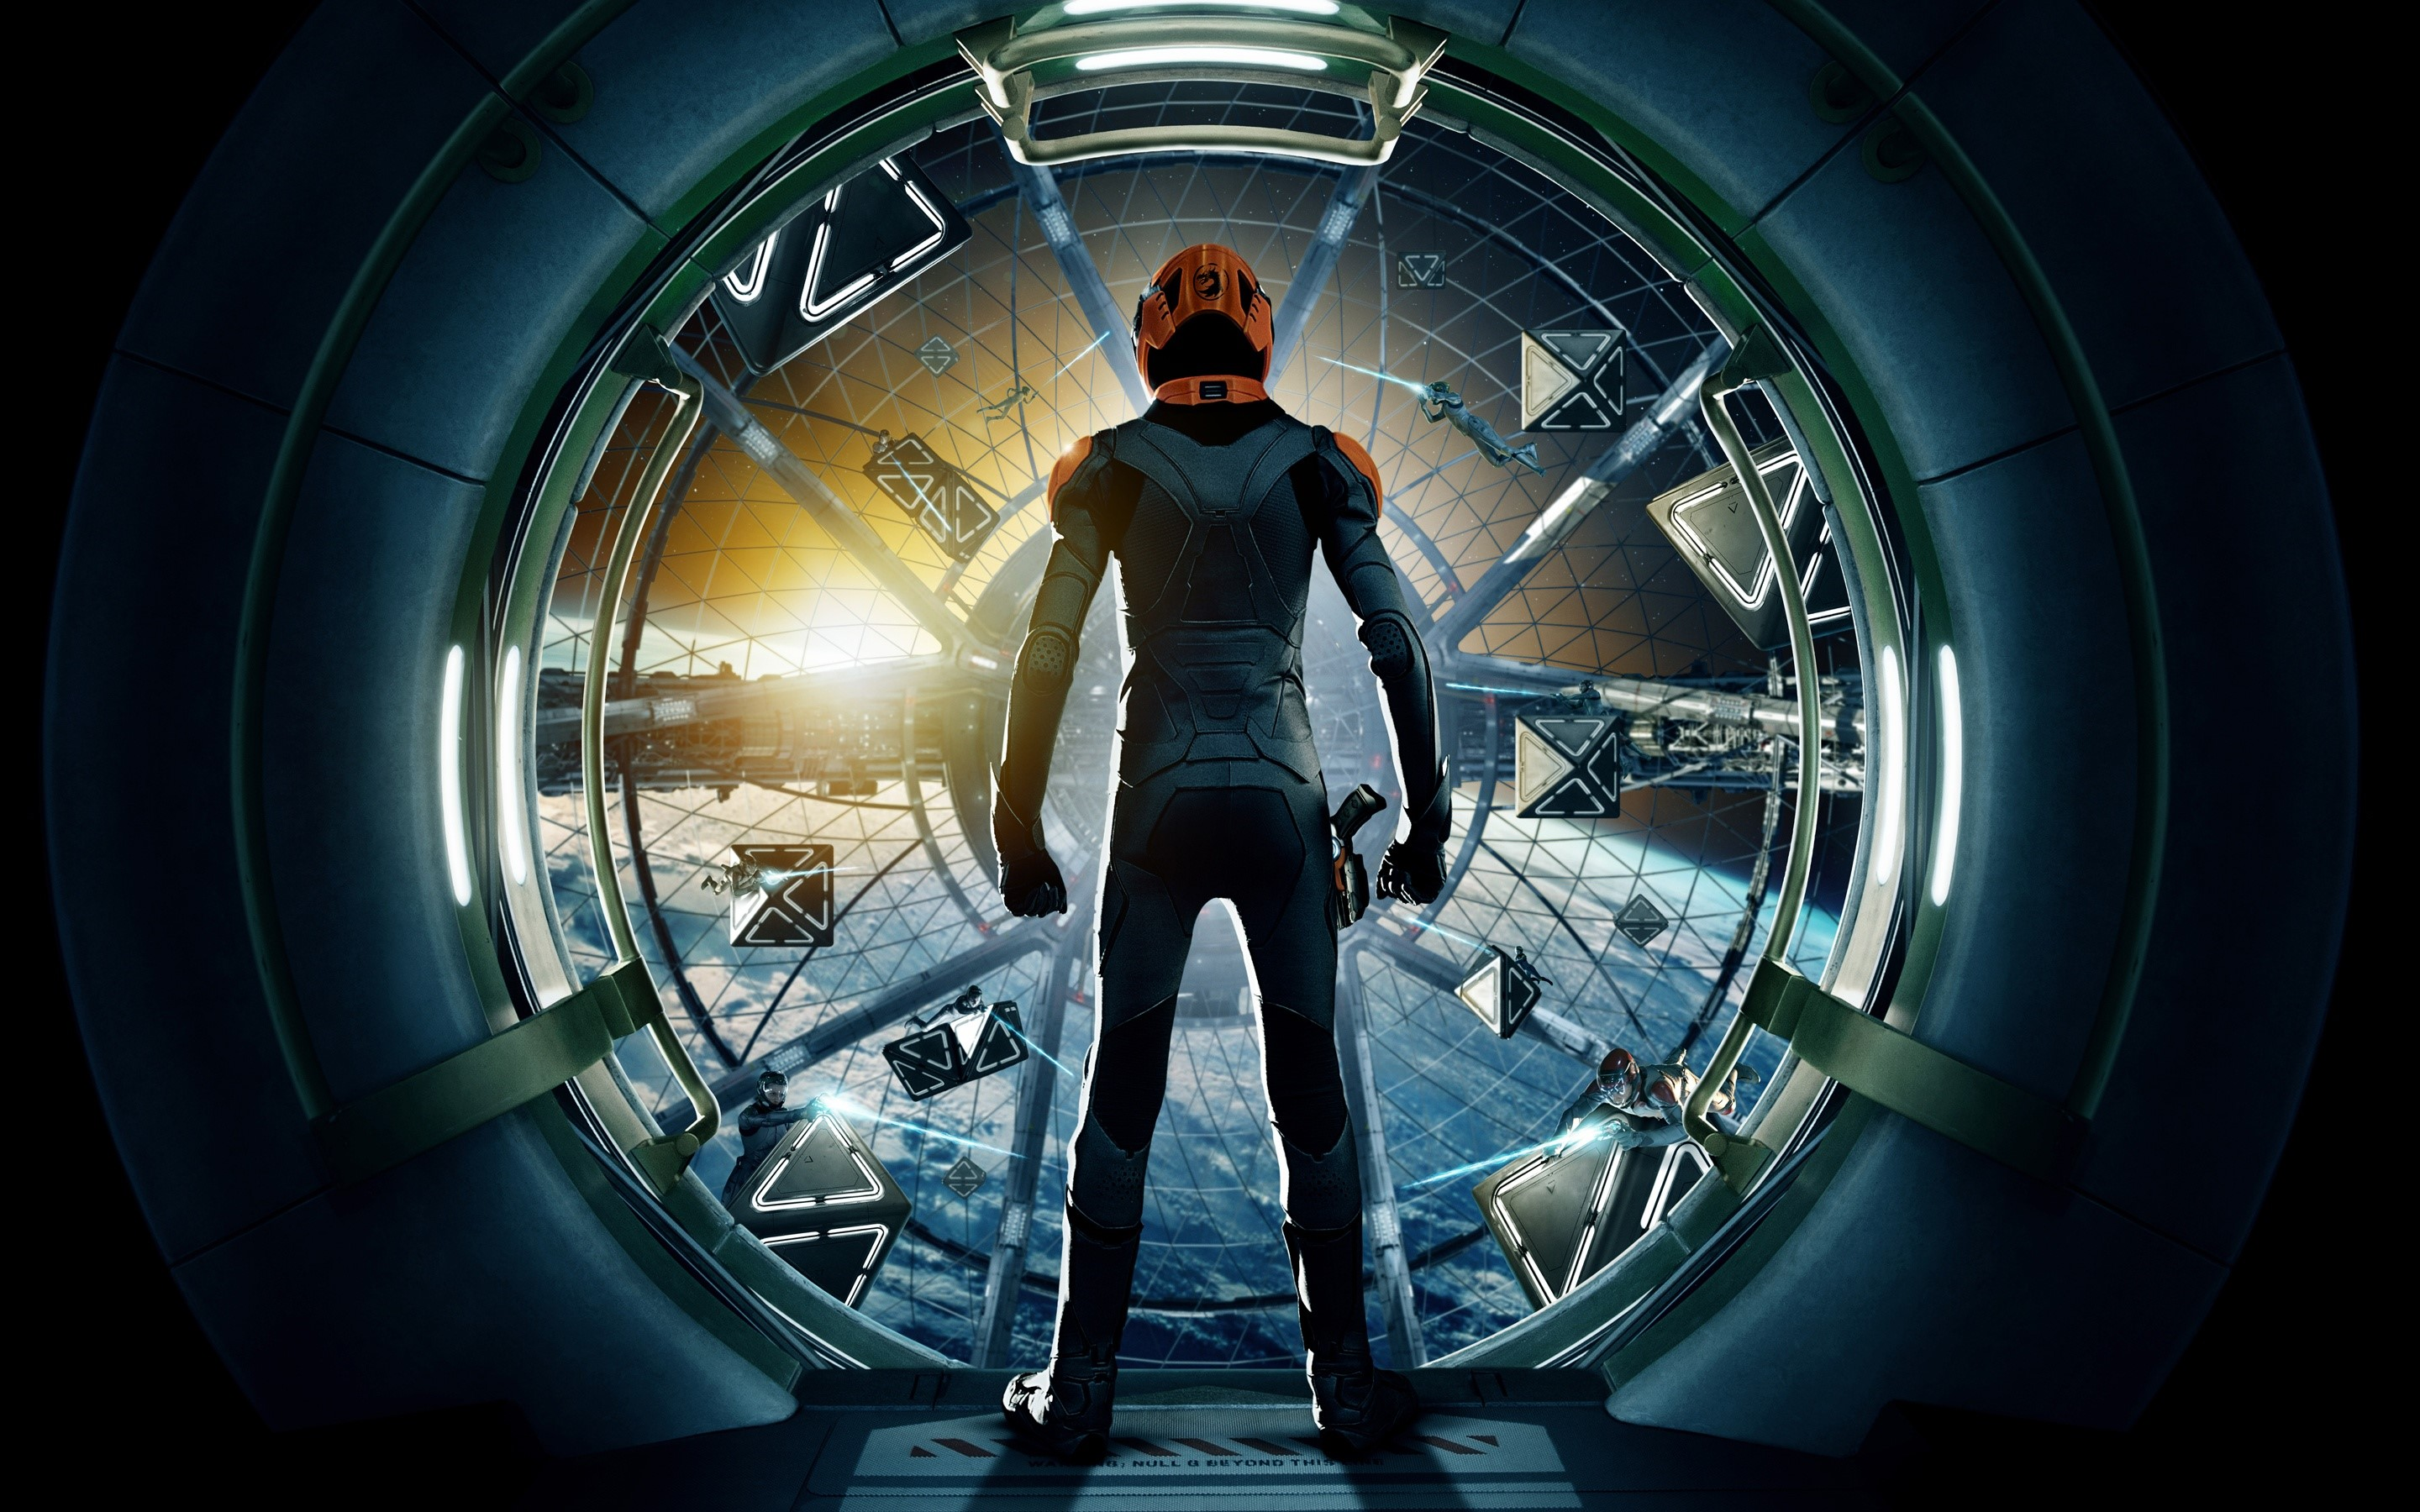 Wallpaper Movie Enders Game